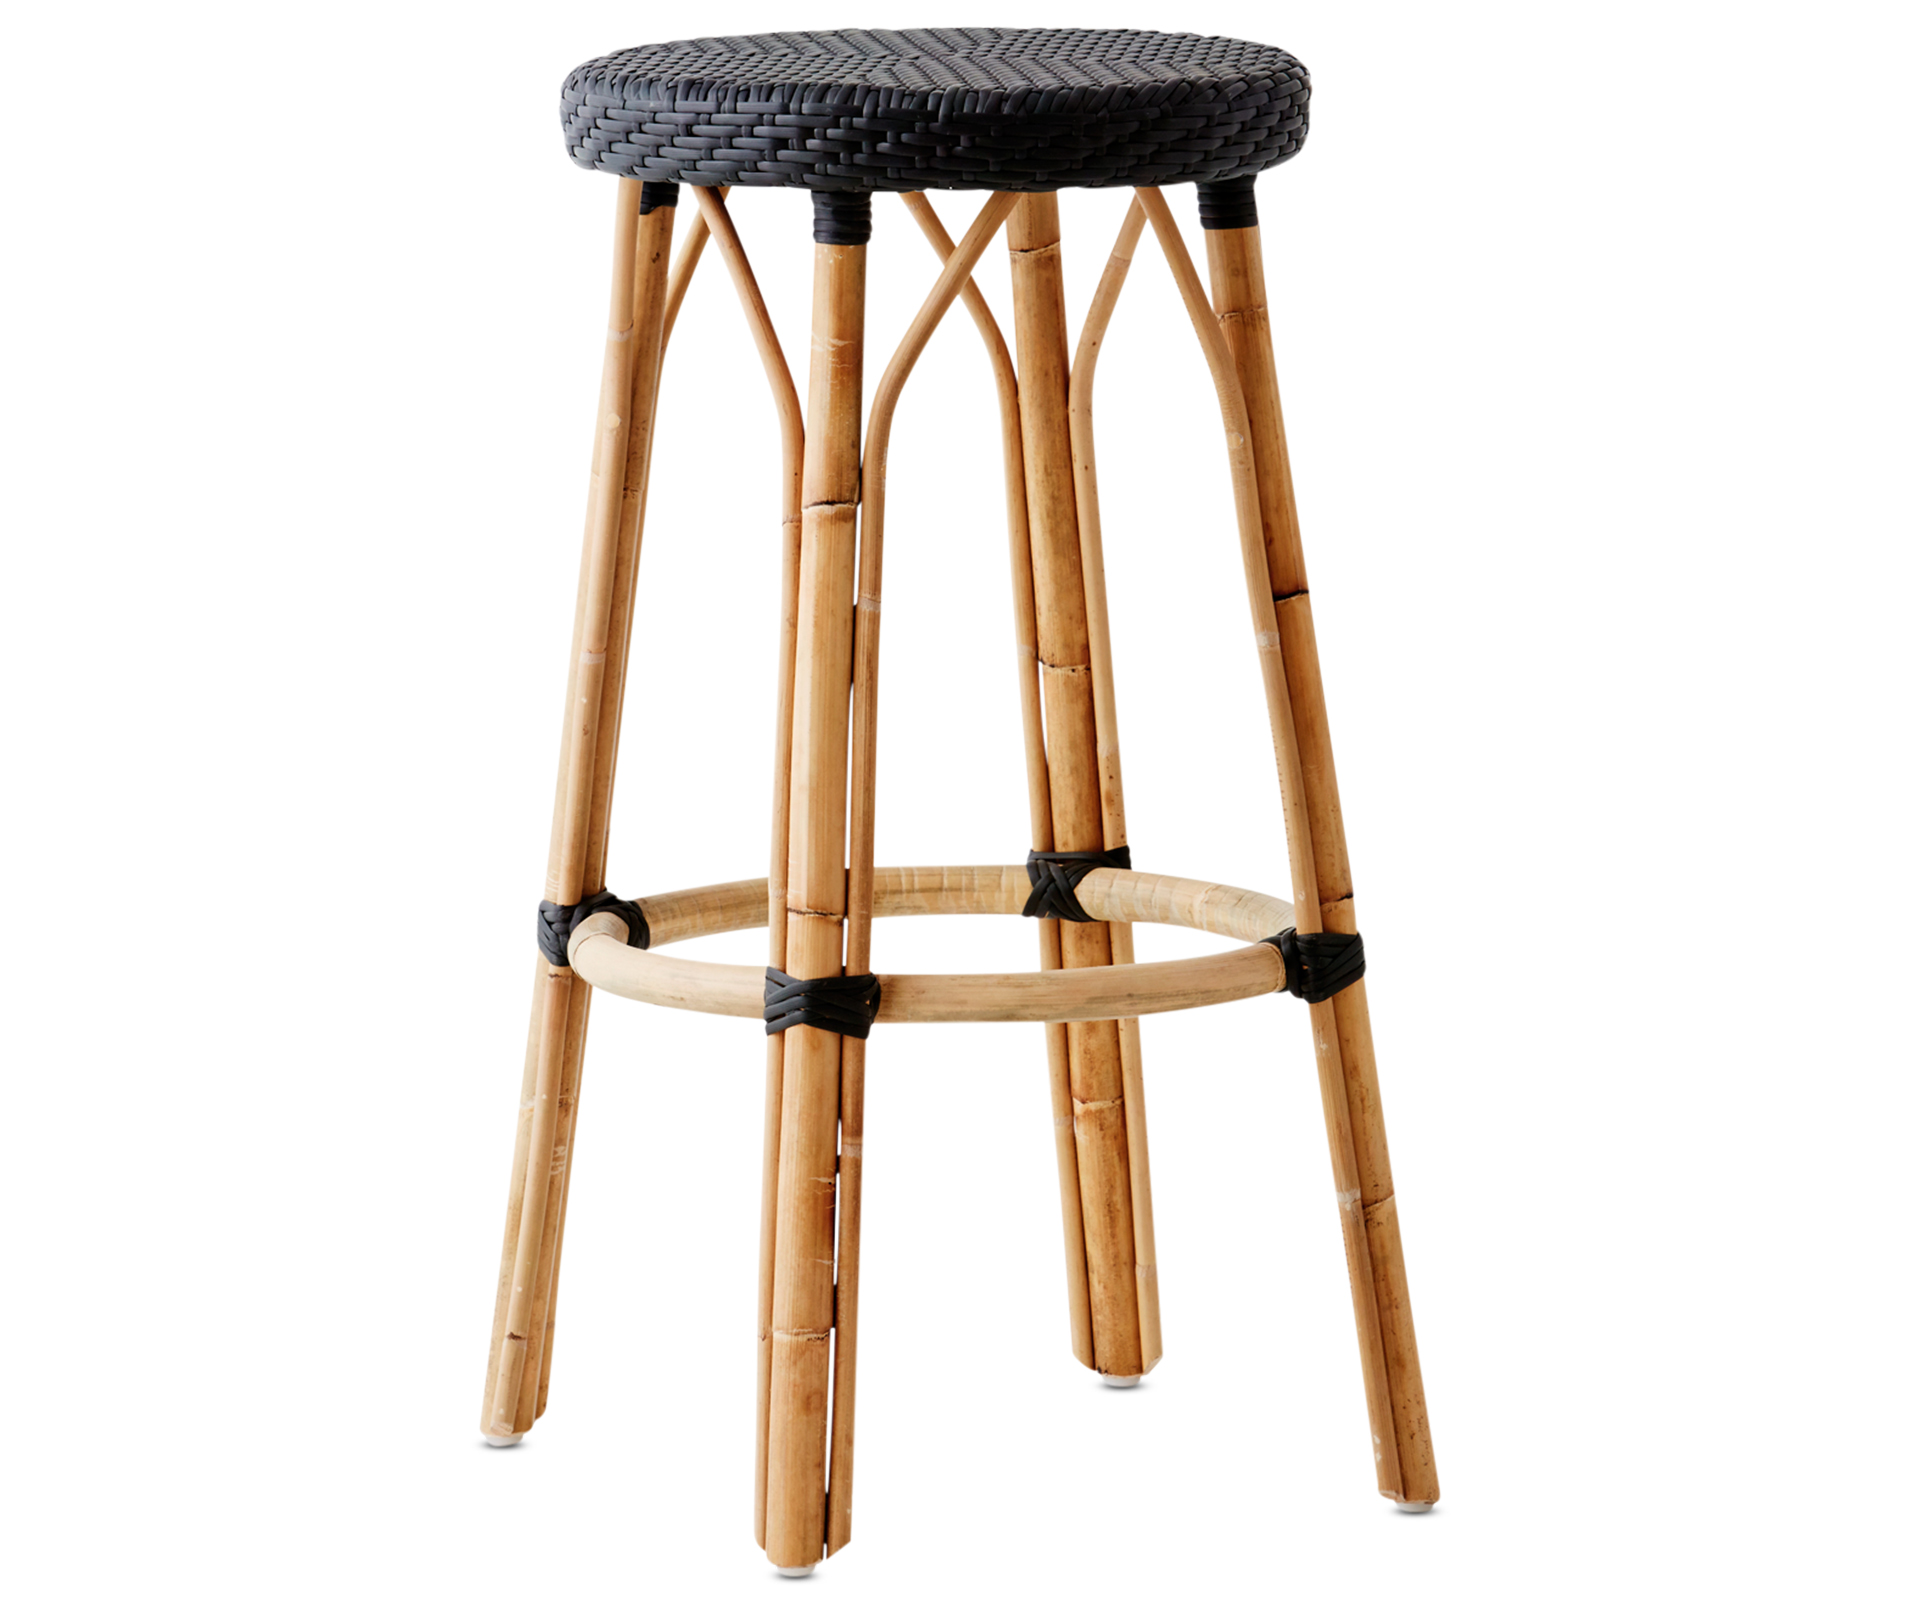 mccabe camping chairs chair lift london 12 designer bar stools homes